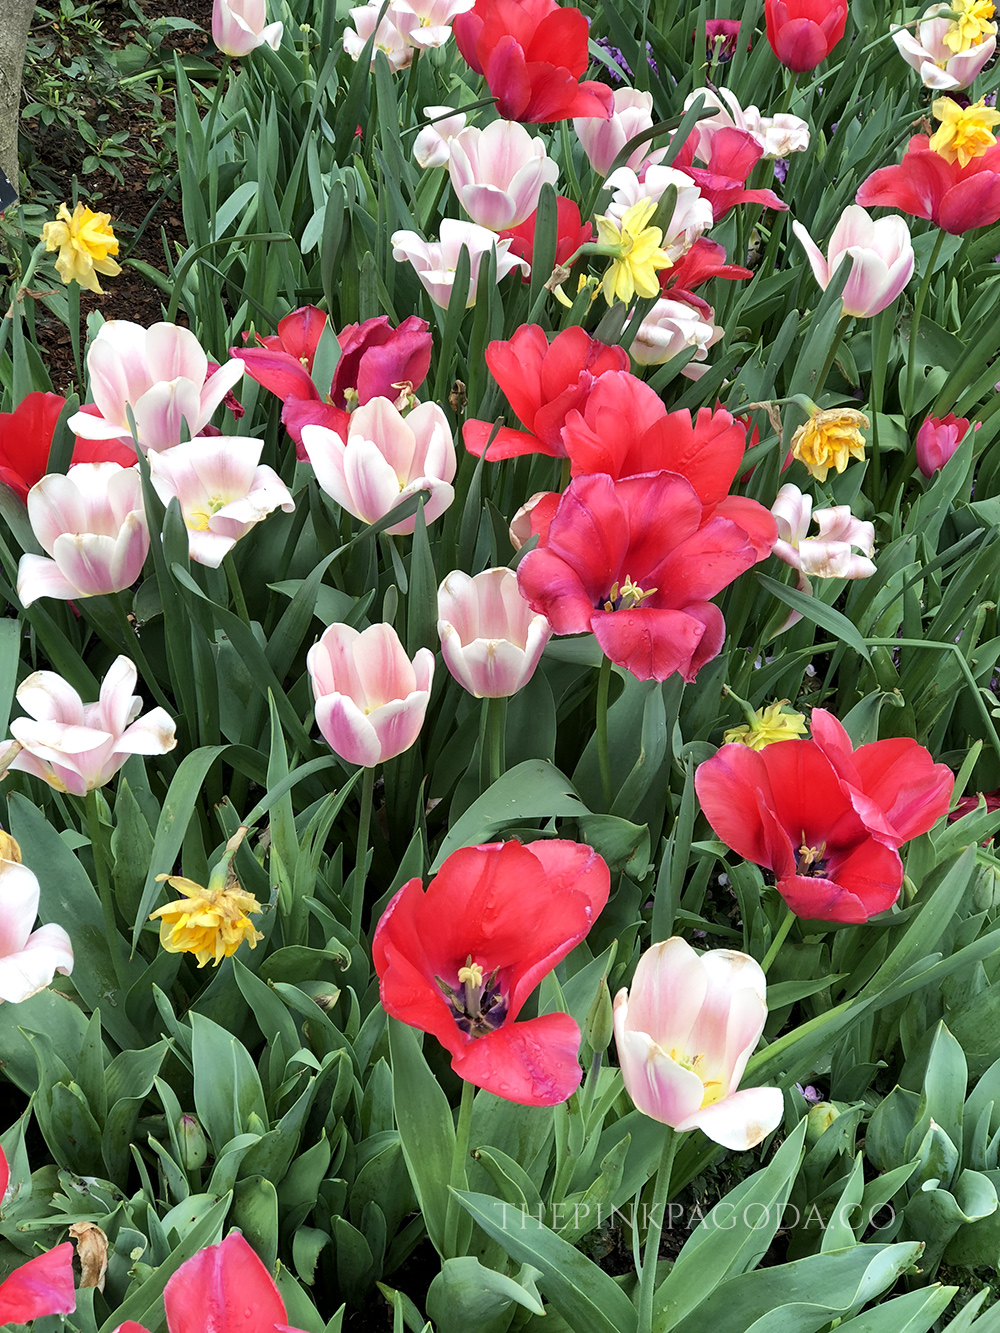 Tulips of every size and color at The Dallas Arboretum.